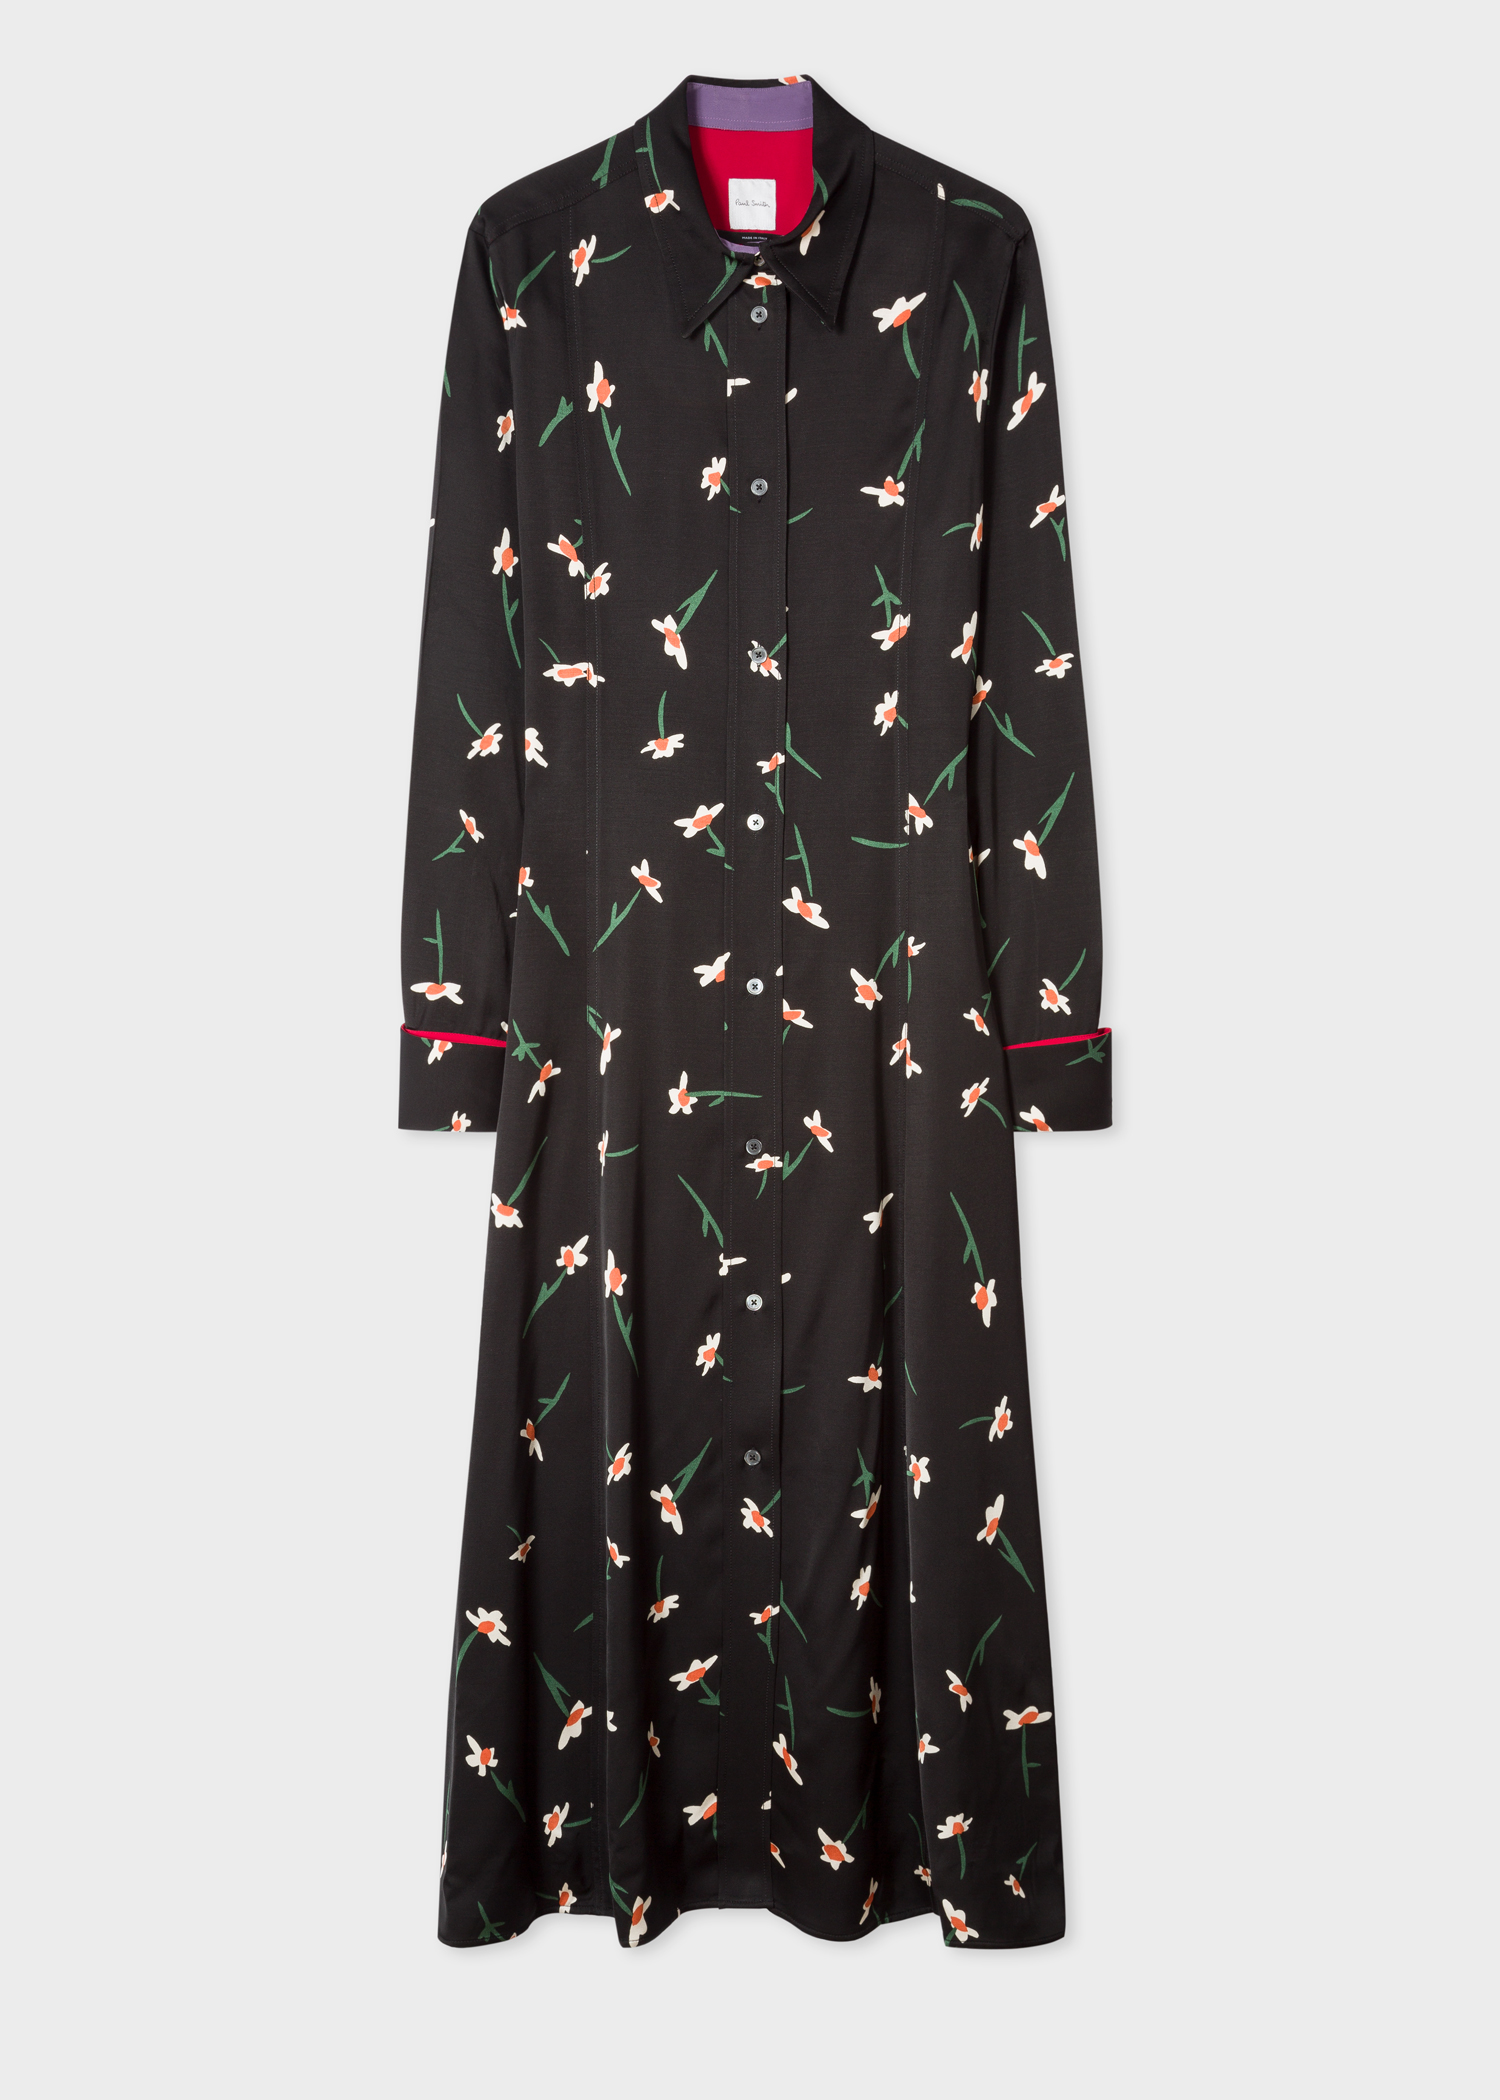 Front View - Women s Black  Painted Daisy  Shirt Dress Paul Smith fca262294